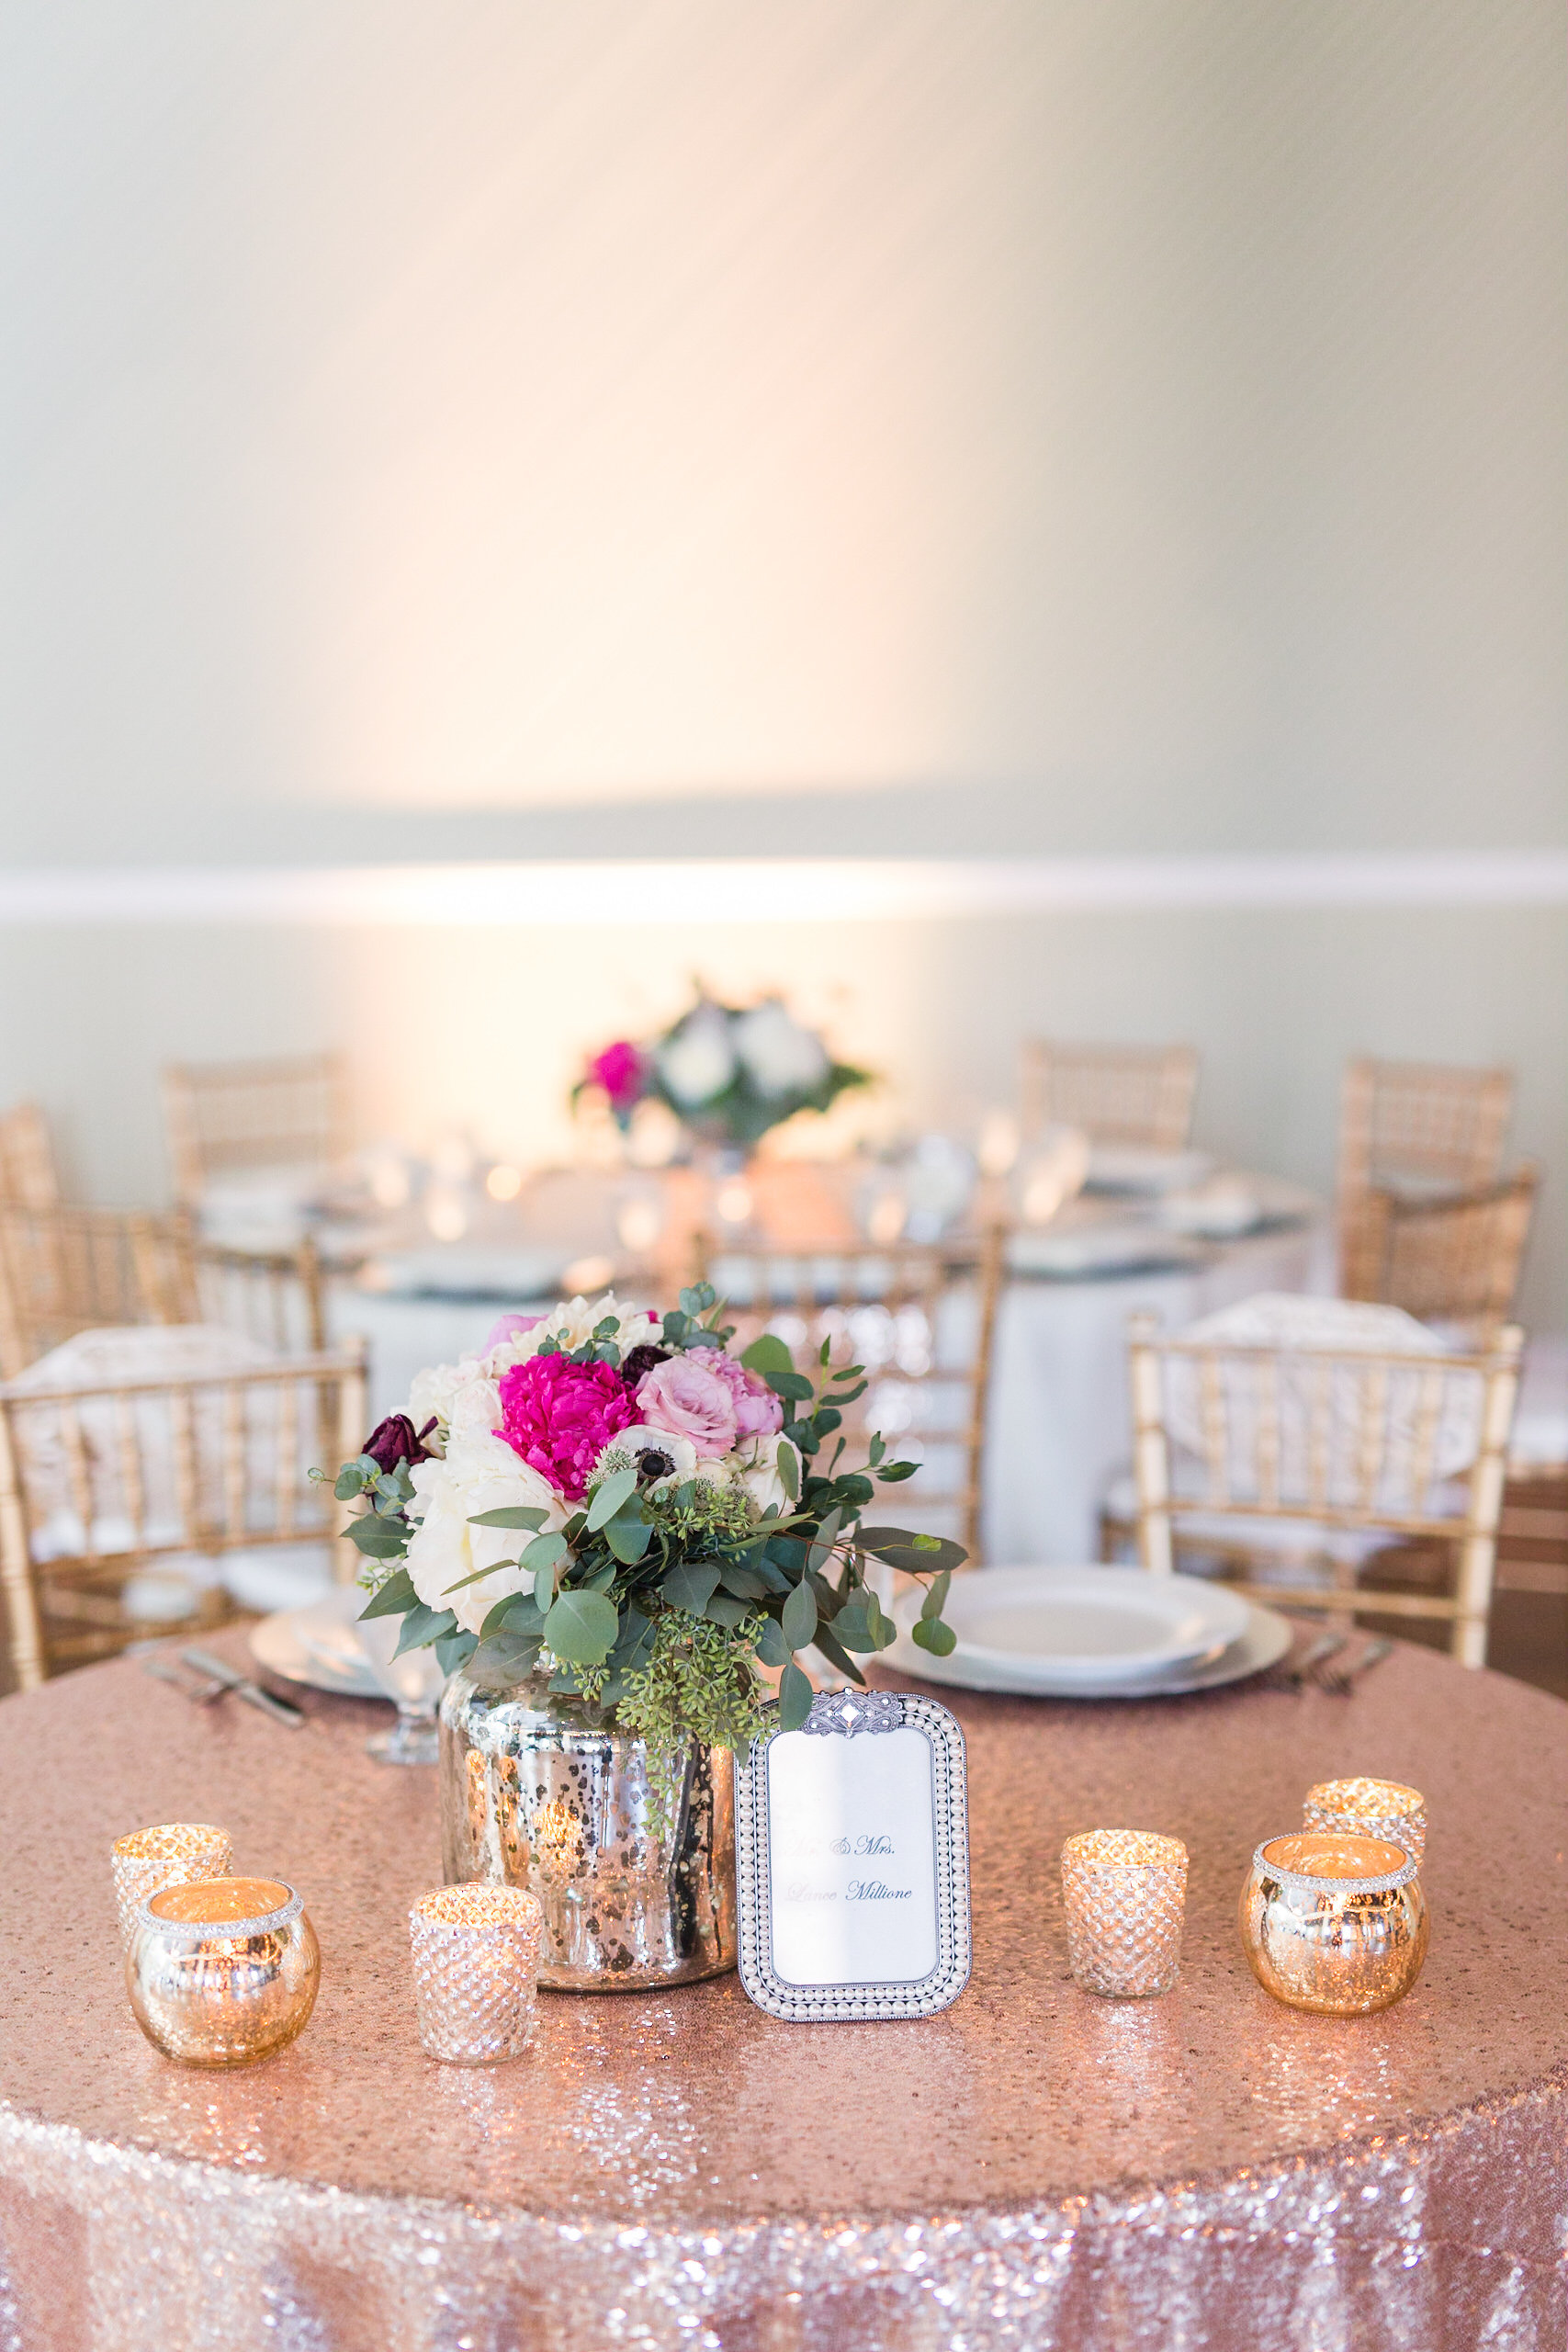 Love Is In The Air Design: Our sequin gold table linens paired with small gold votives